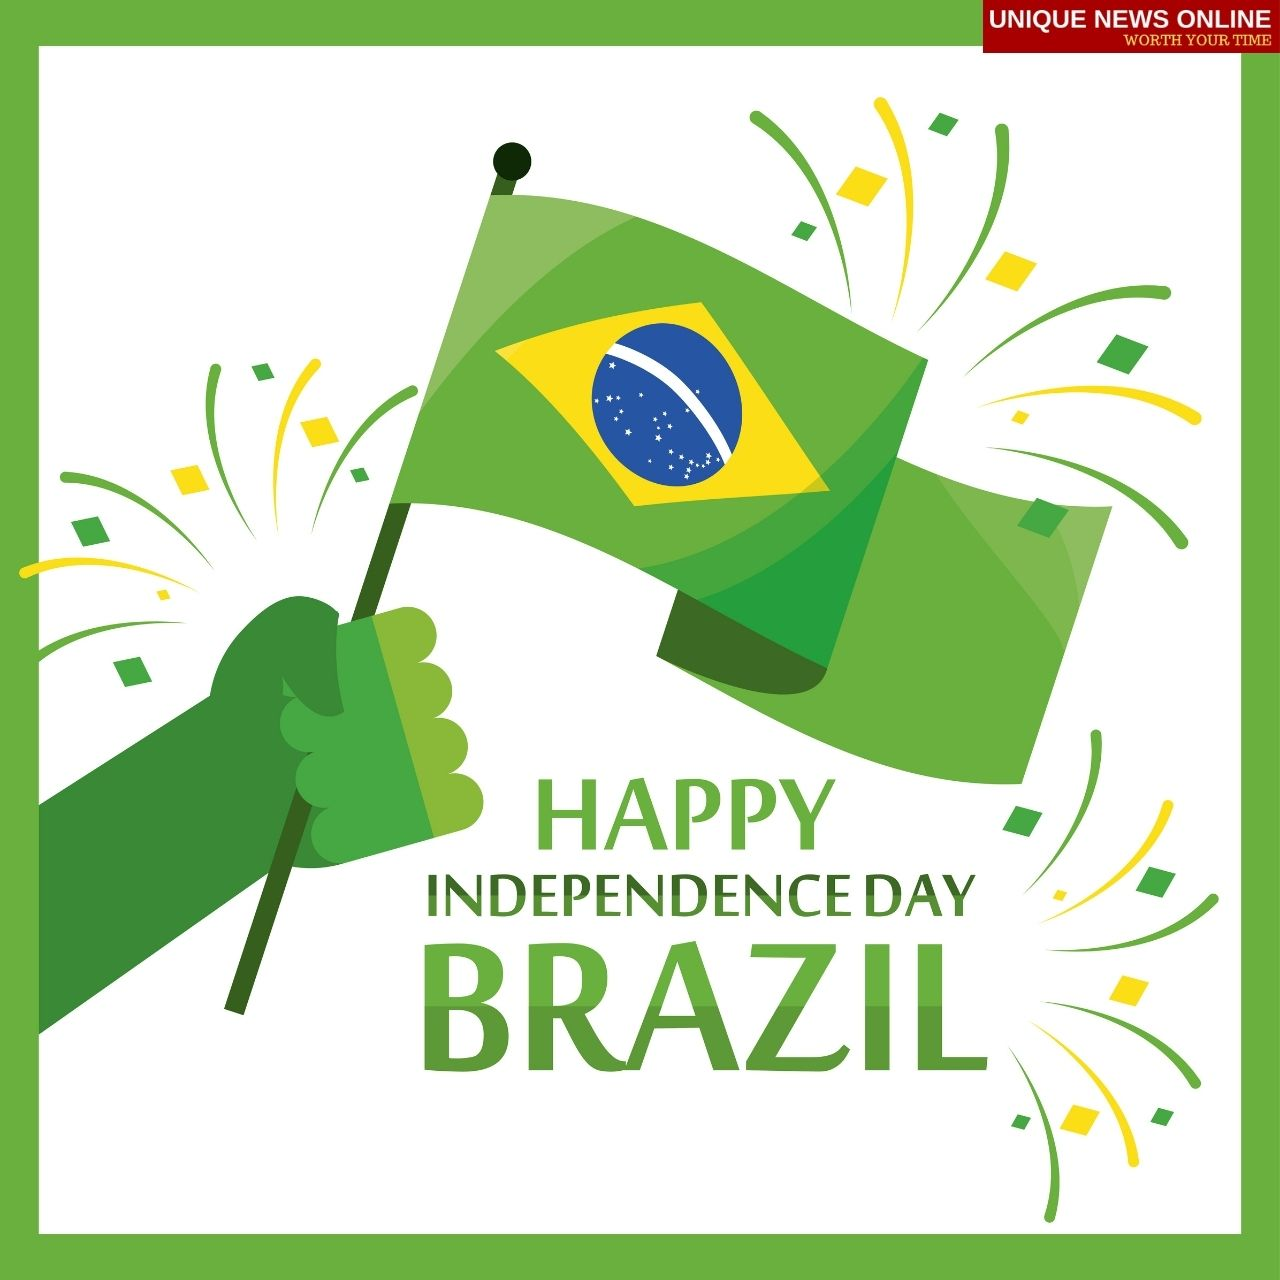 Brazil Independence Day 2021 Wishes, HD Images, Quotes, Messages, Greetings, Stickers and Messages to Share,